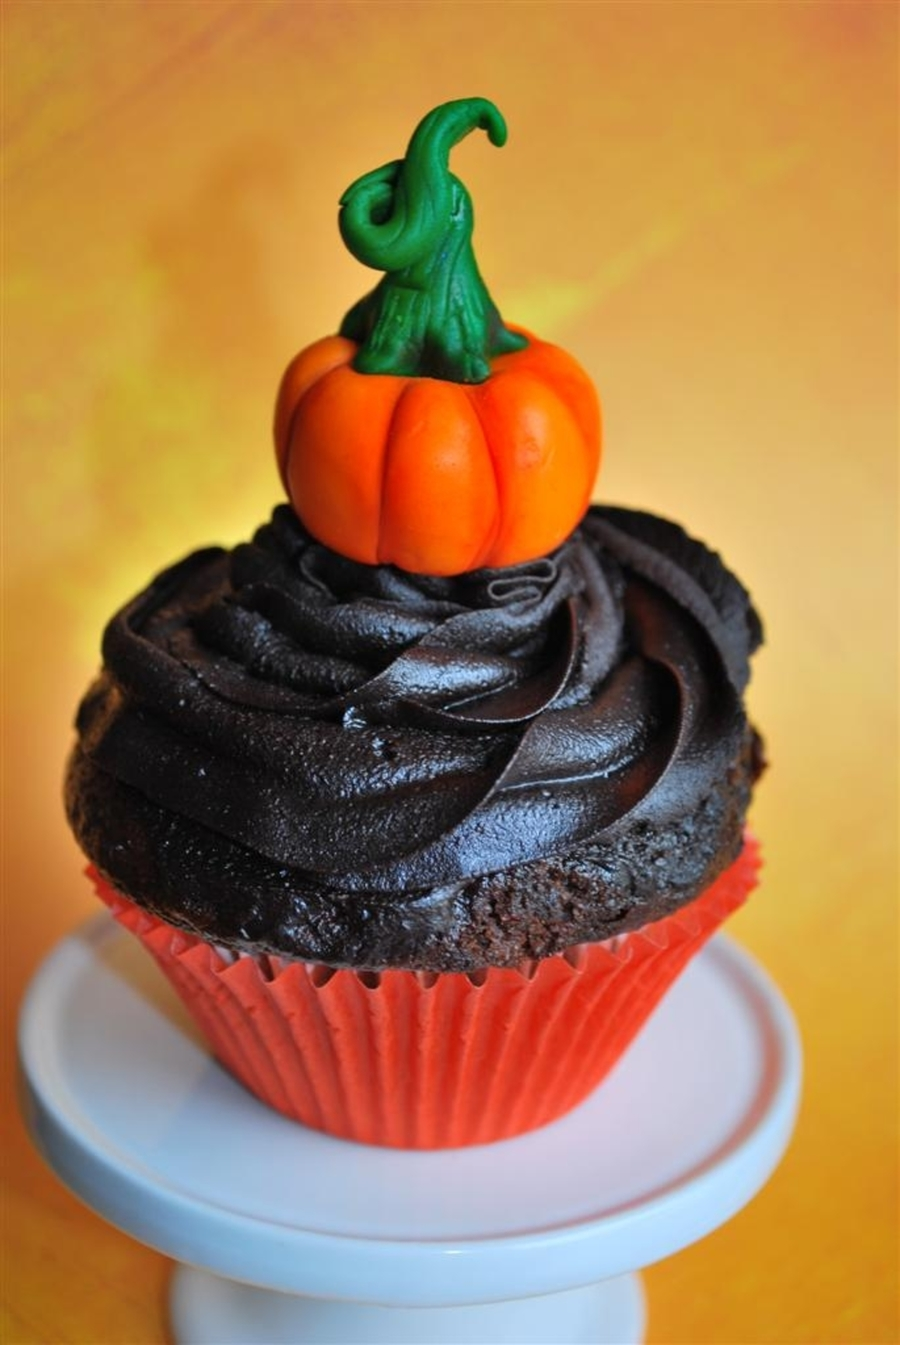 Pumpkin On A Cupcake on Cake Central